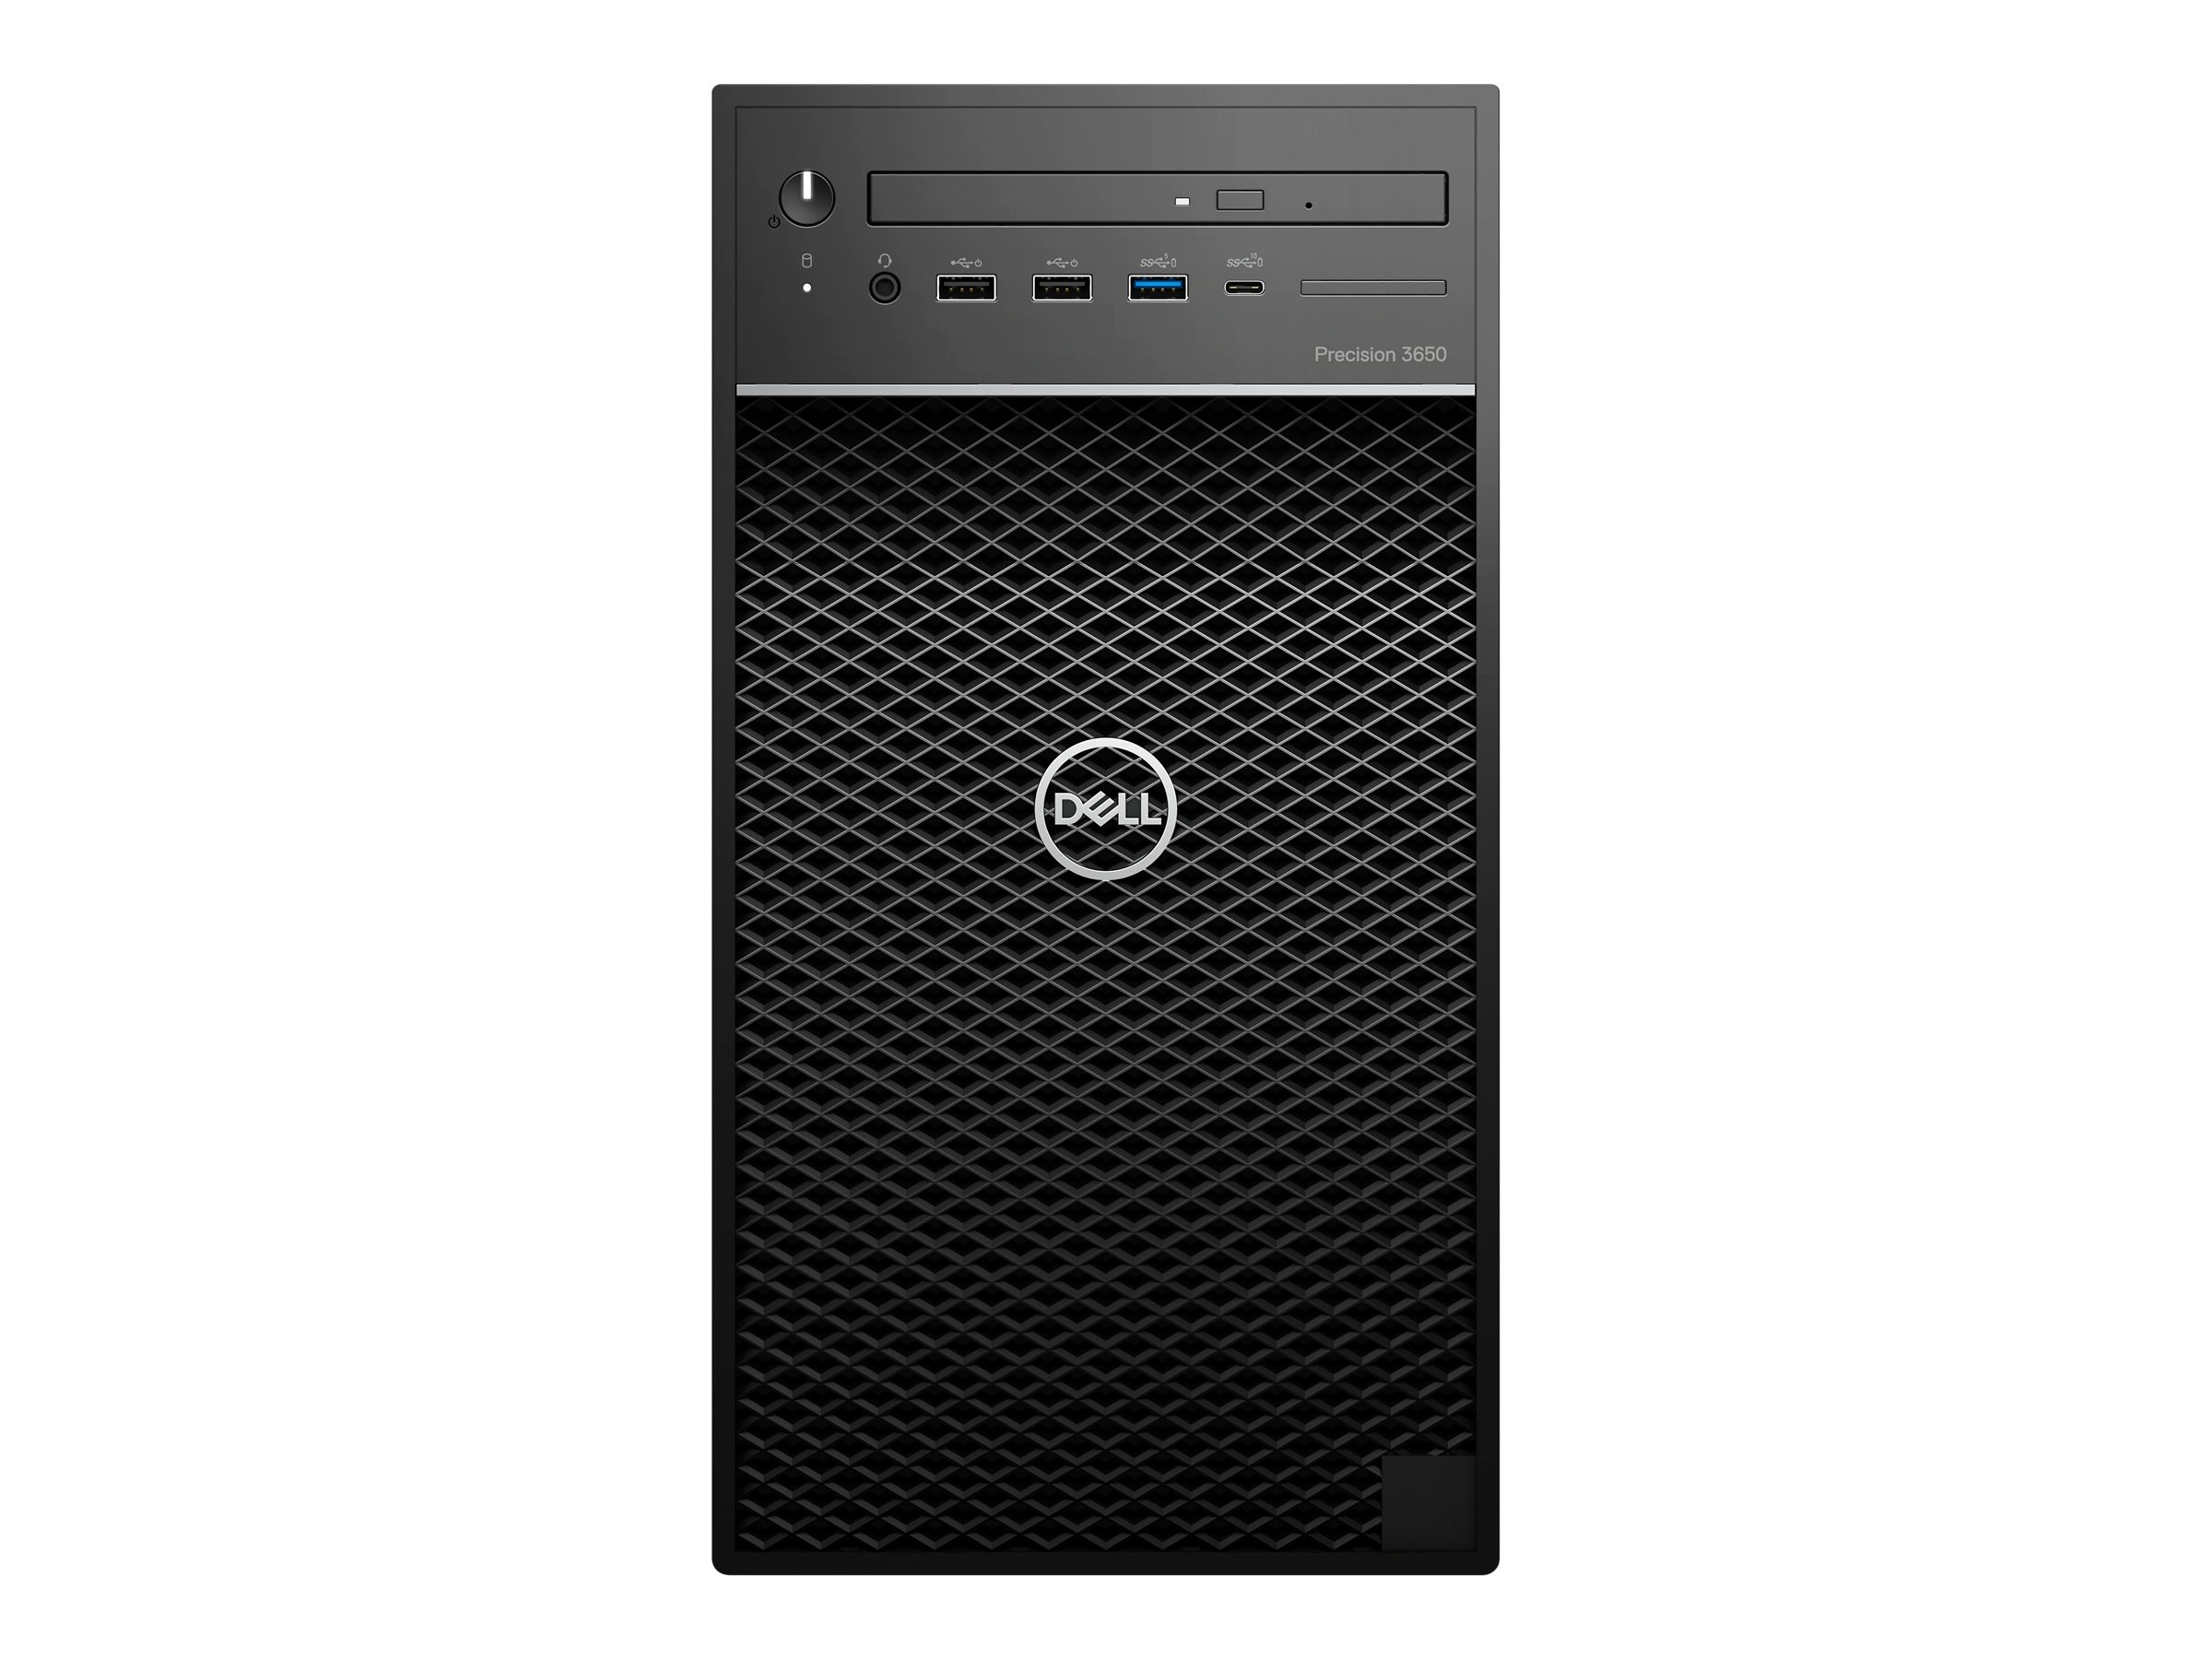 Dell 3650 Tower - MT - 1 x Core i7 10700 / 2.9 GHz - vPro - RAM 8 GB - SSD 256 GB